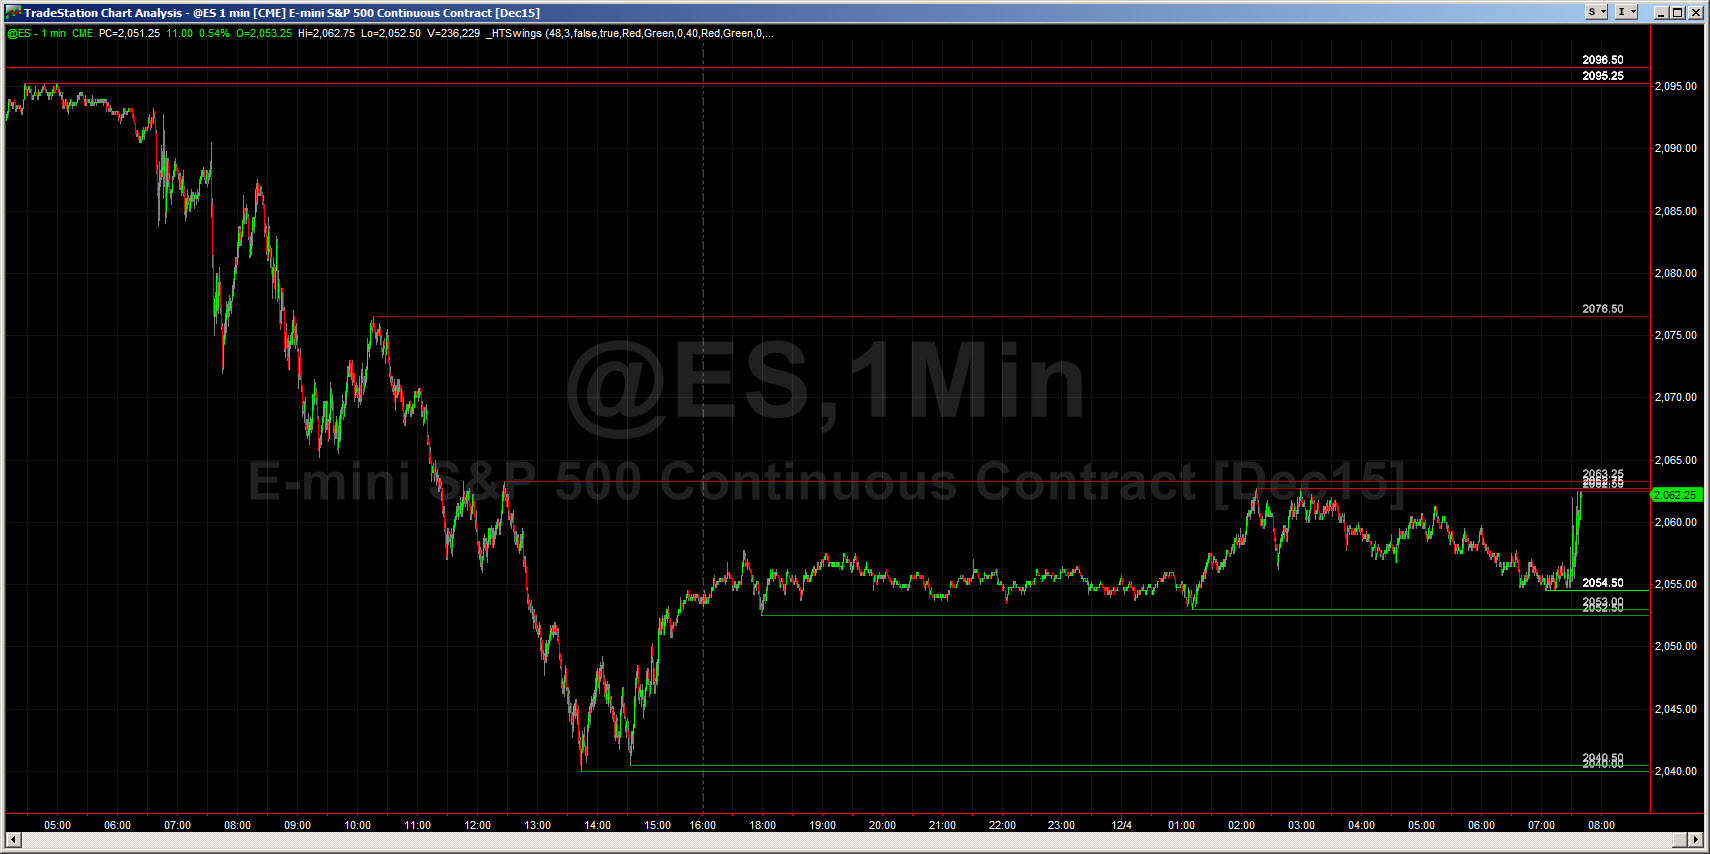 Swings - Support and Resistance (TS 9 5/10)